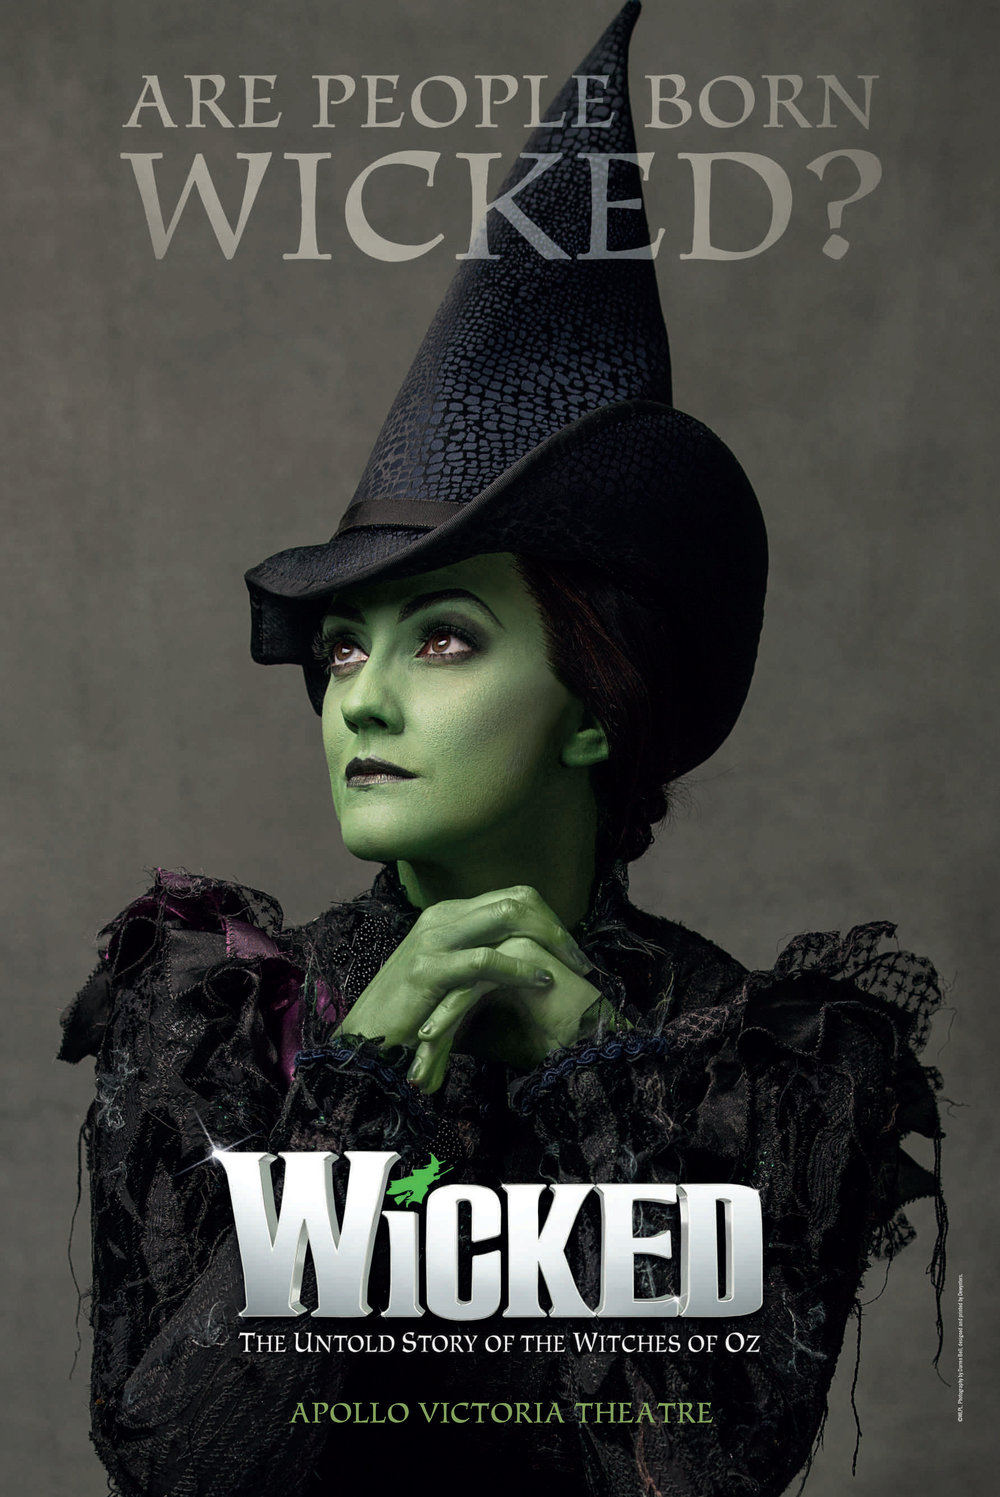 WICKED POSTER.jpg